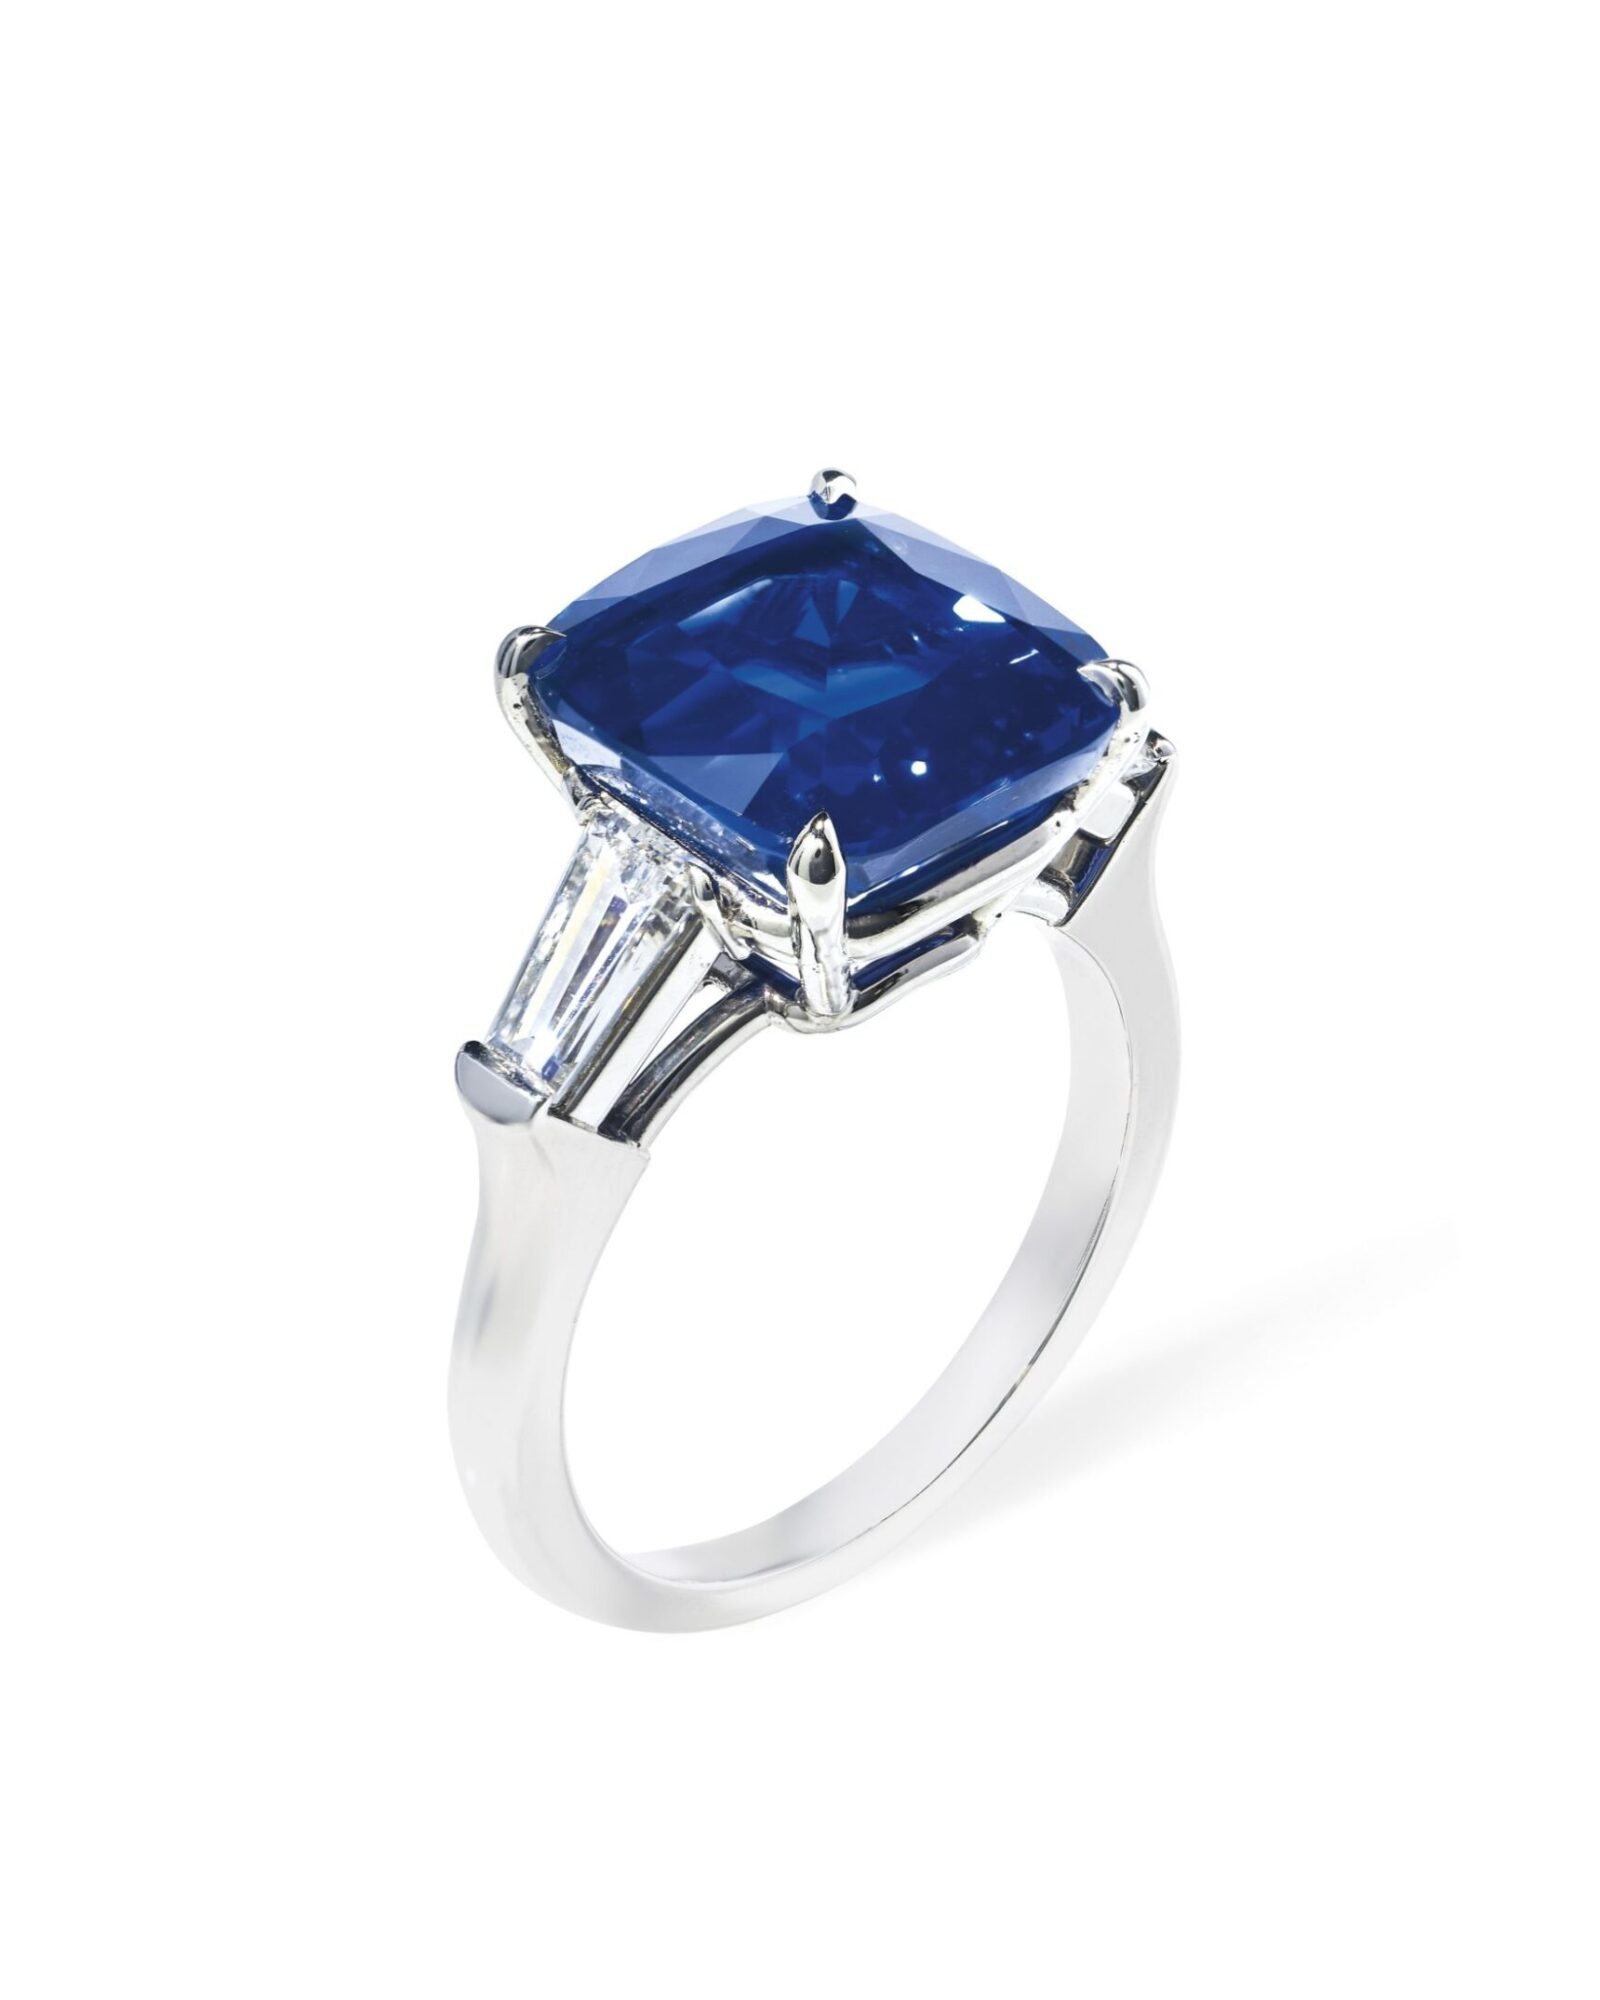 Kashmir sapphire and diamond ring of 7.83 cts estimate CHF400,000-600,000